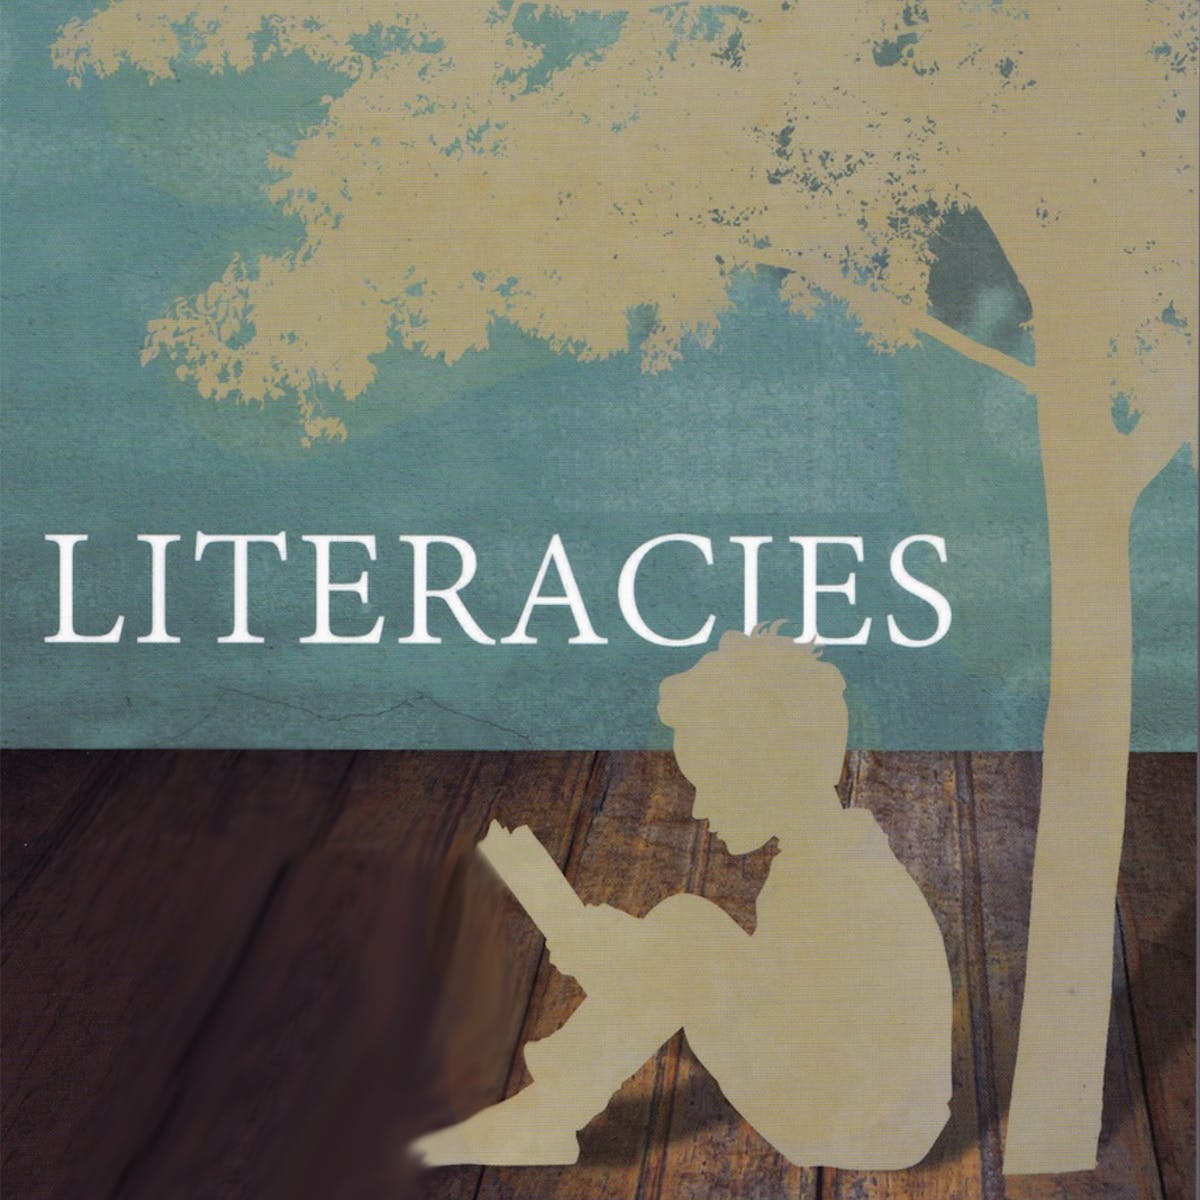 Literacy Teaching and Learning: Aims, Approaches and Pedagogies